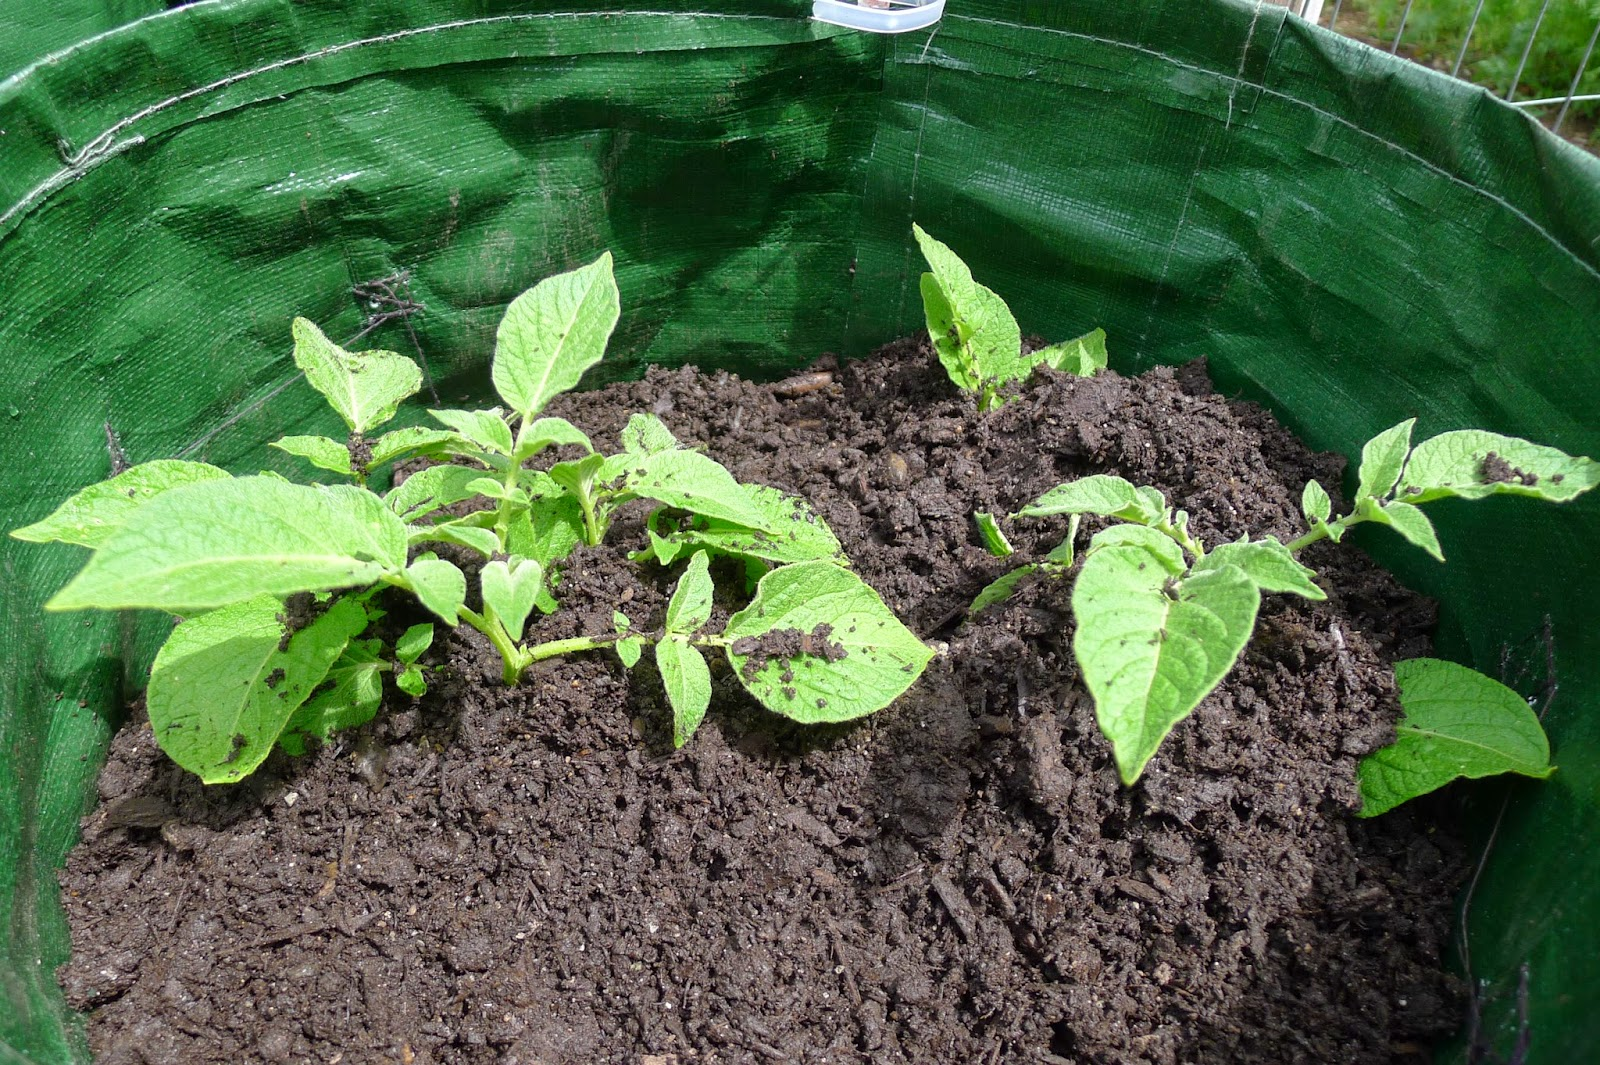 Hilling Grow Bag Potatoes